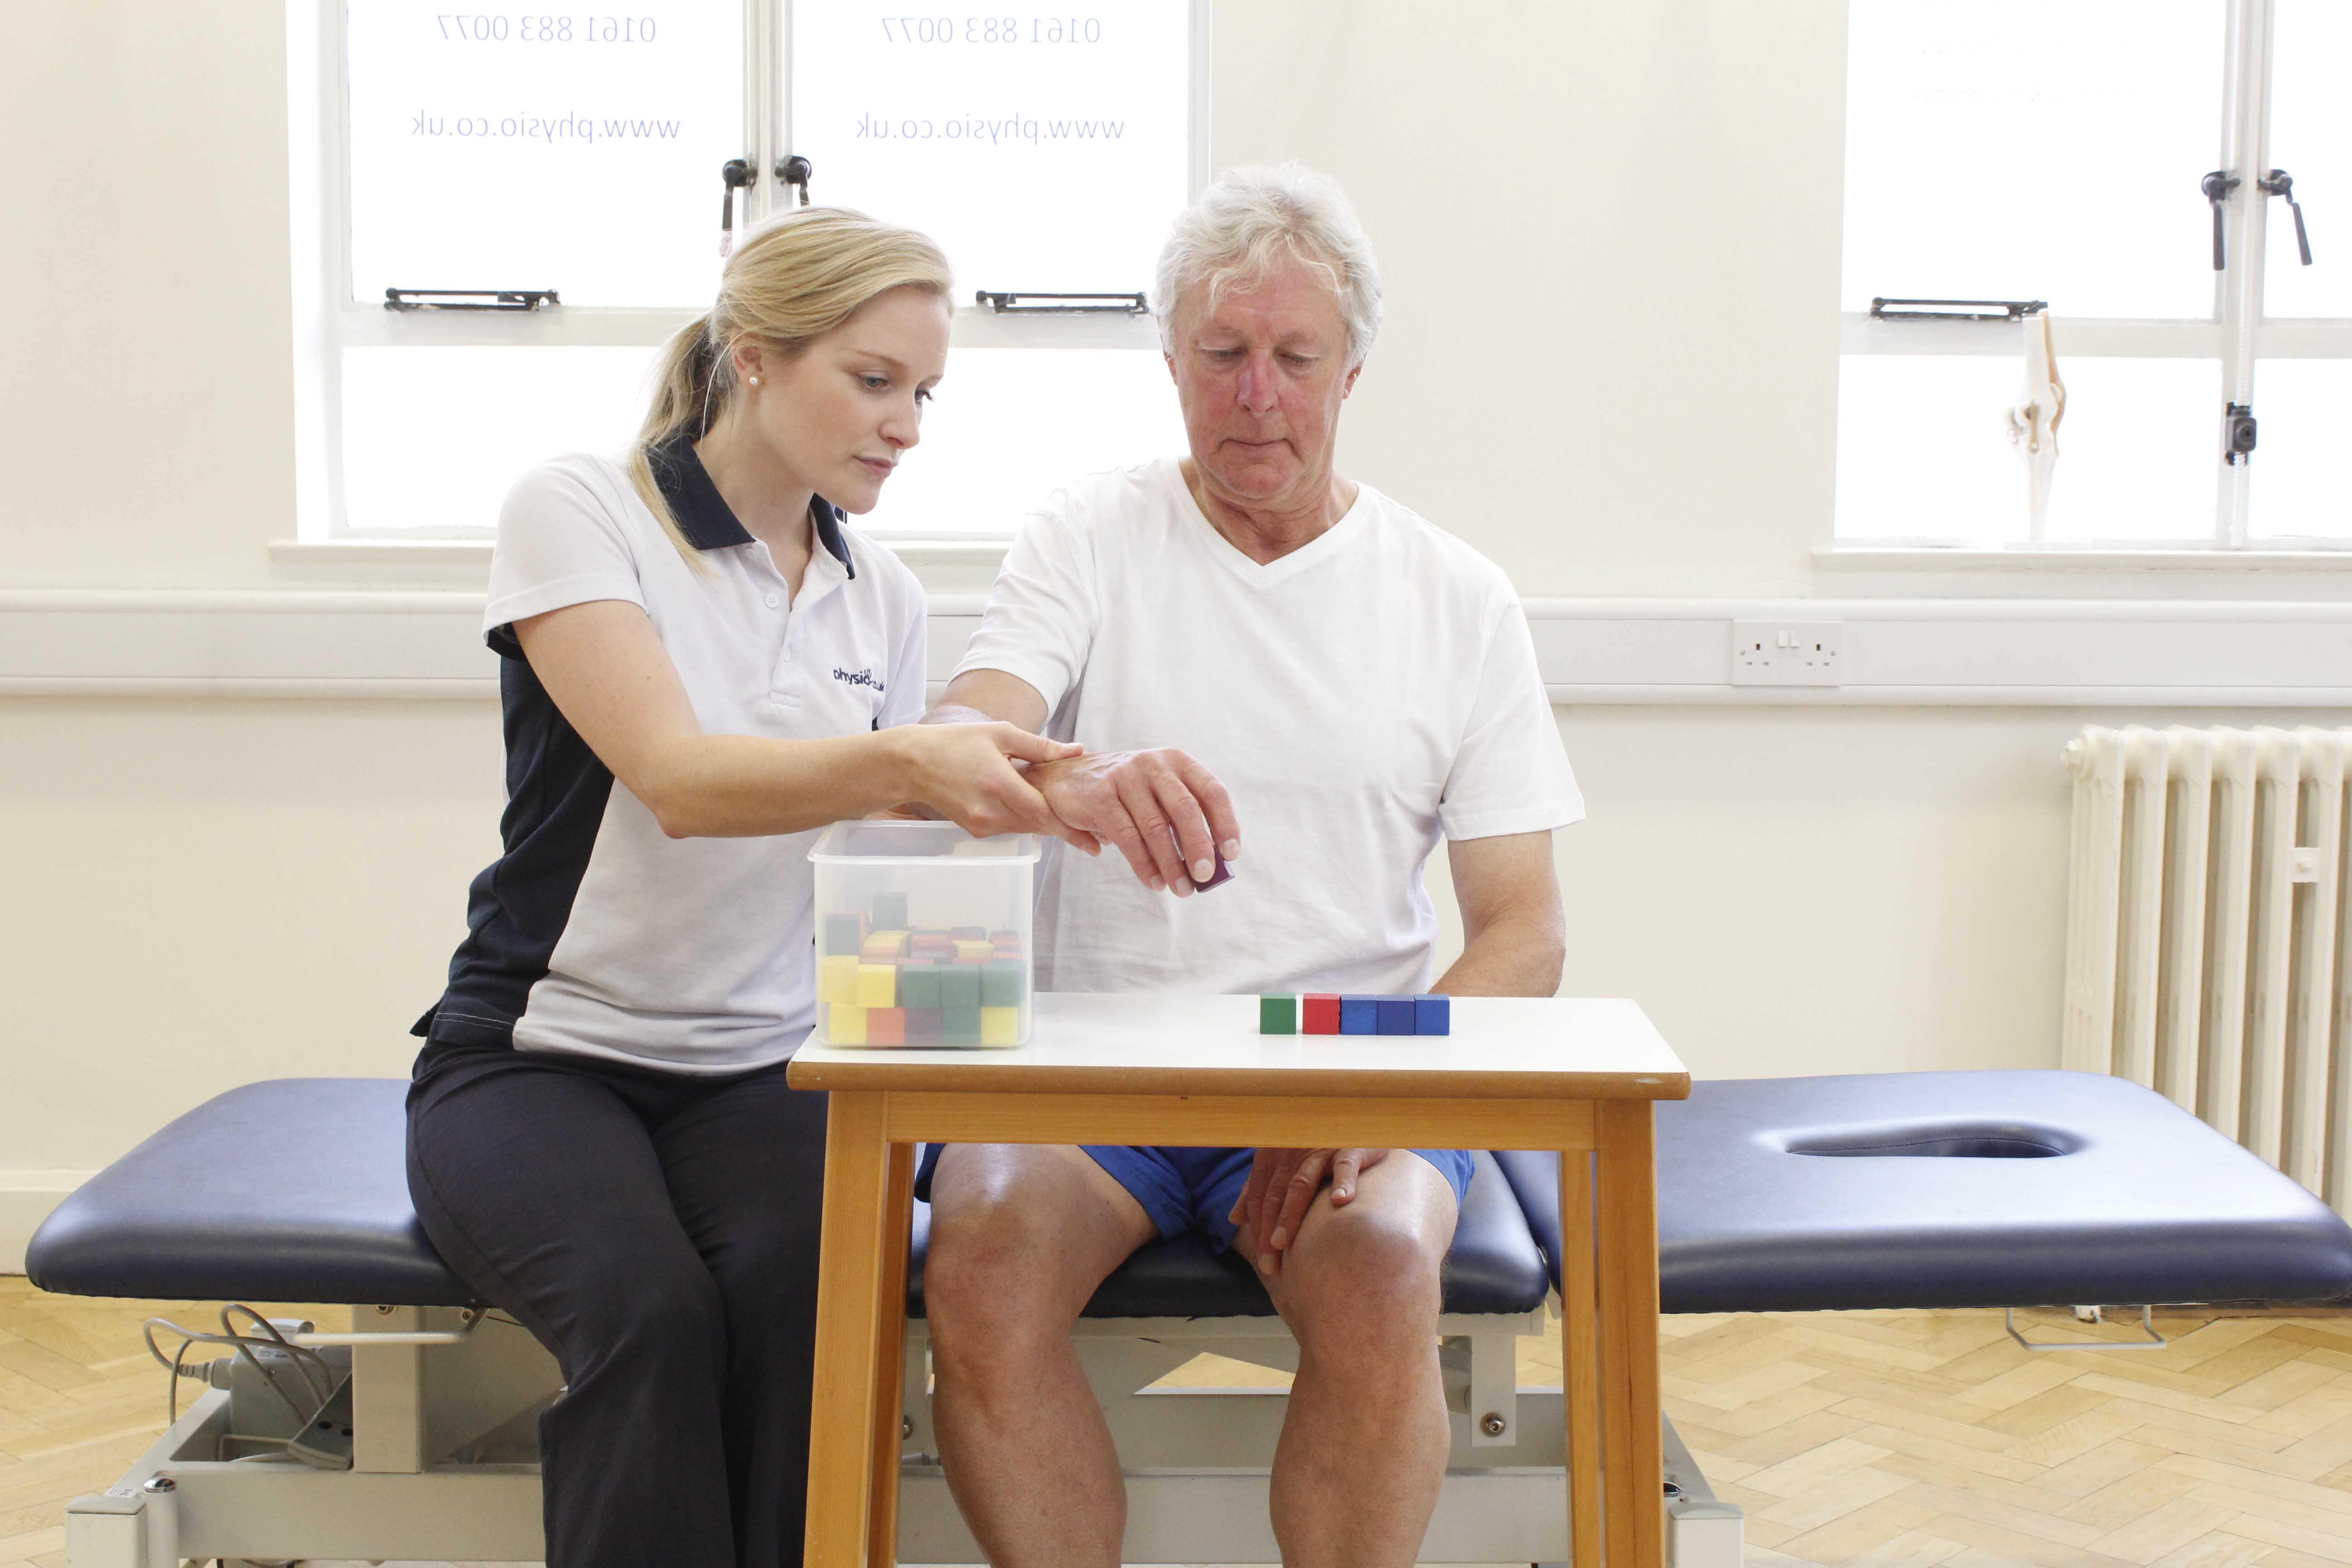 Fine motor skills and co-ordination exercises supervised by a neurological physiotherapist